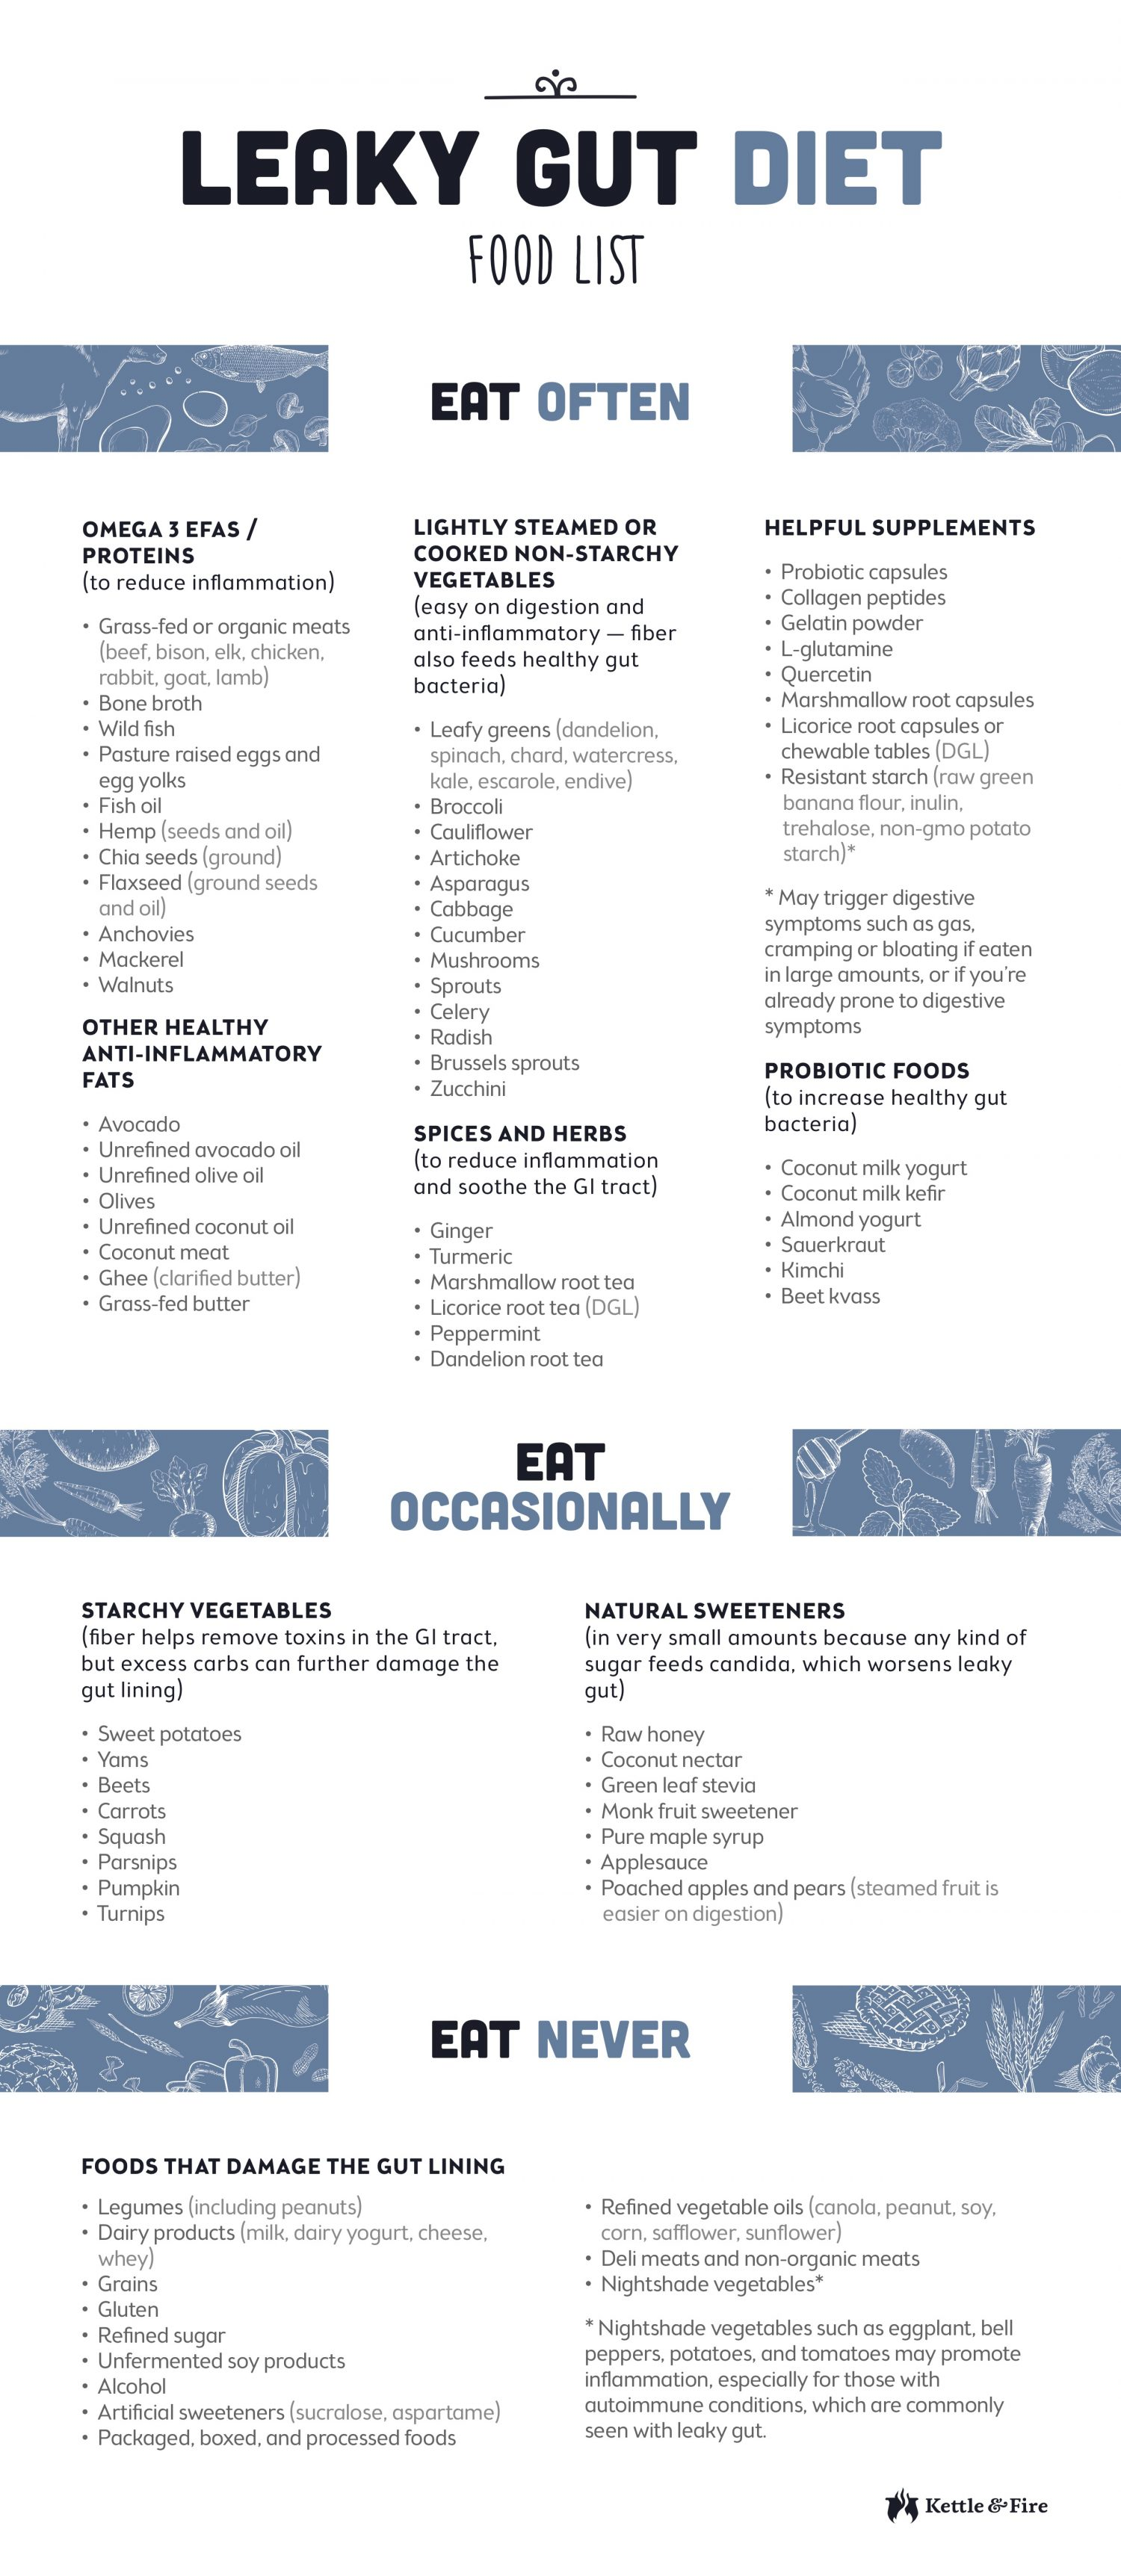 Download this print-friendly leaky gut diet food list for FREE to help guide your choices when it comes to grocery shopping and meal prep in order to heal your gut.